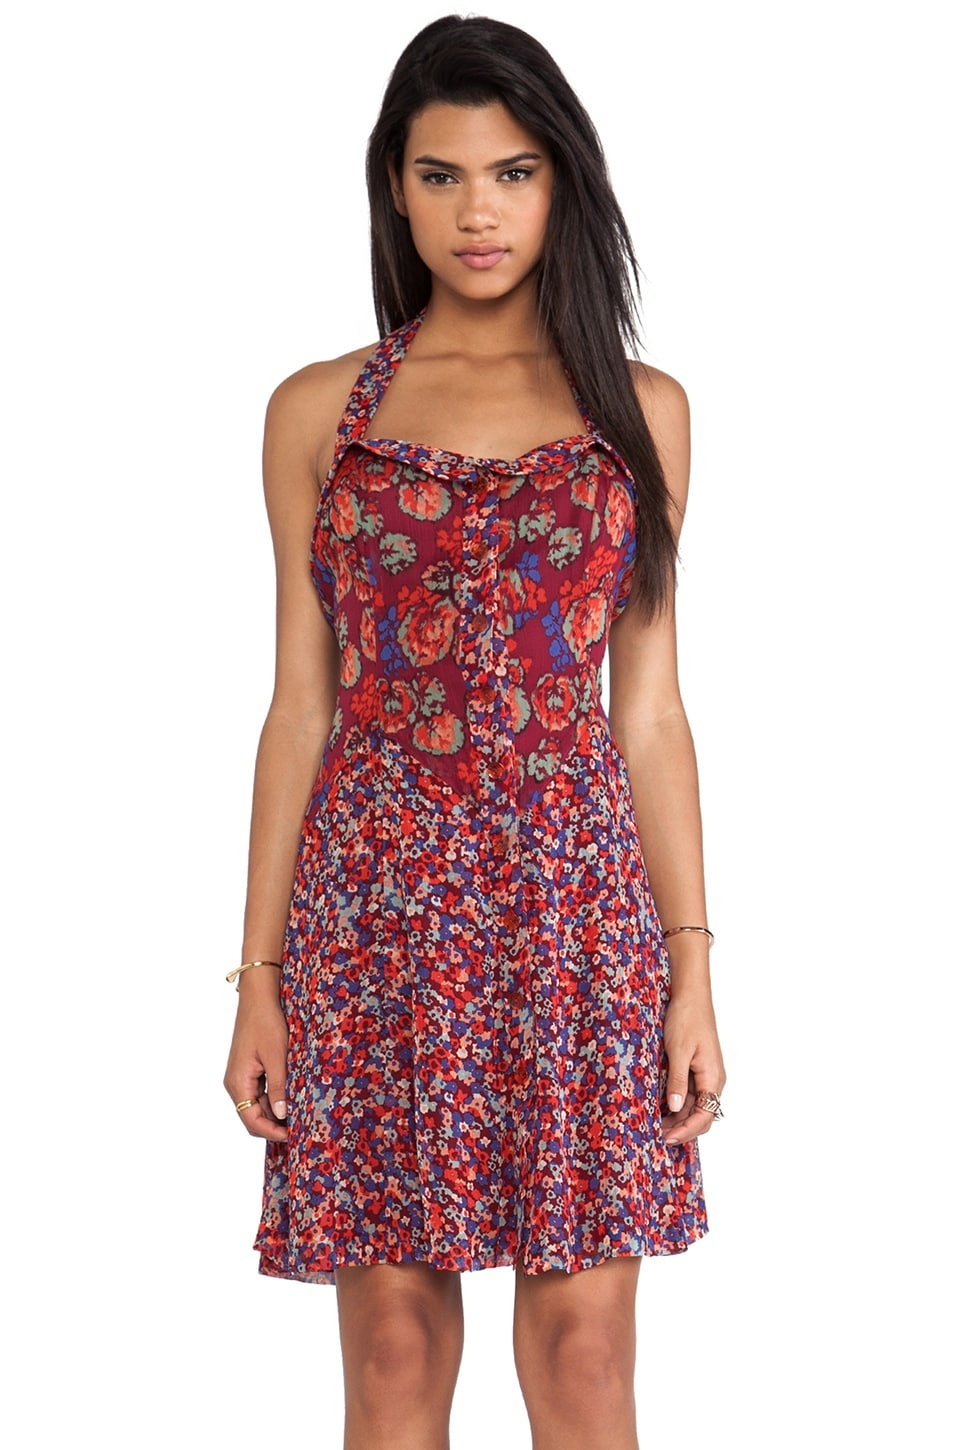 Anna Sui Geranium and Camouflage Floral Print Crinkle Chiffon Dress in Poppy Multi